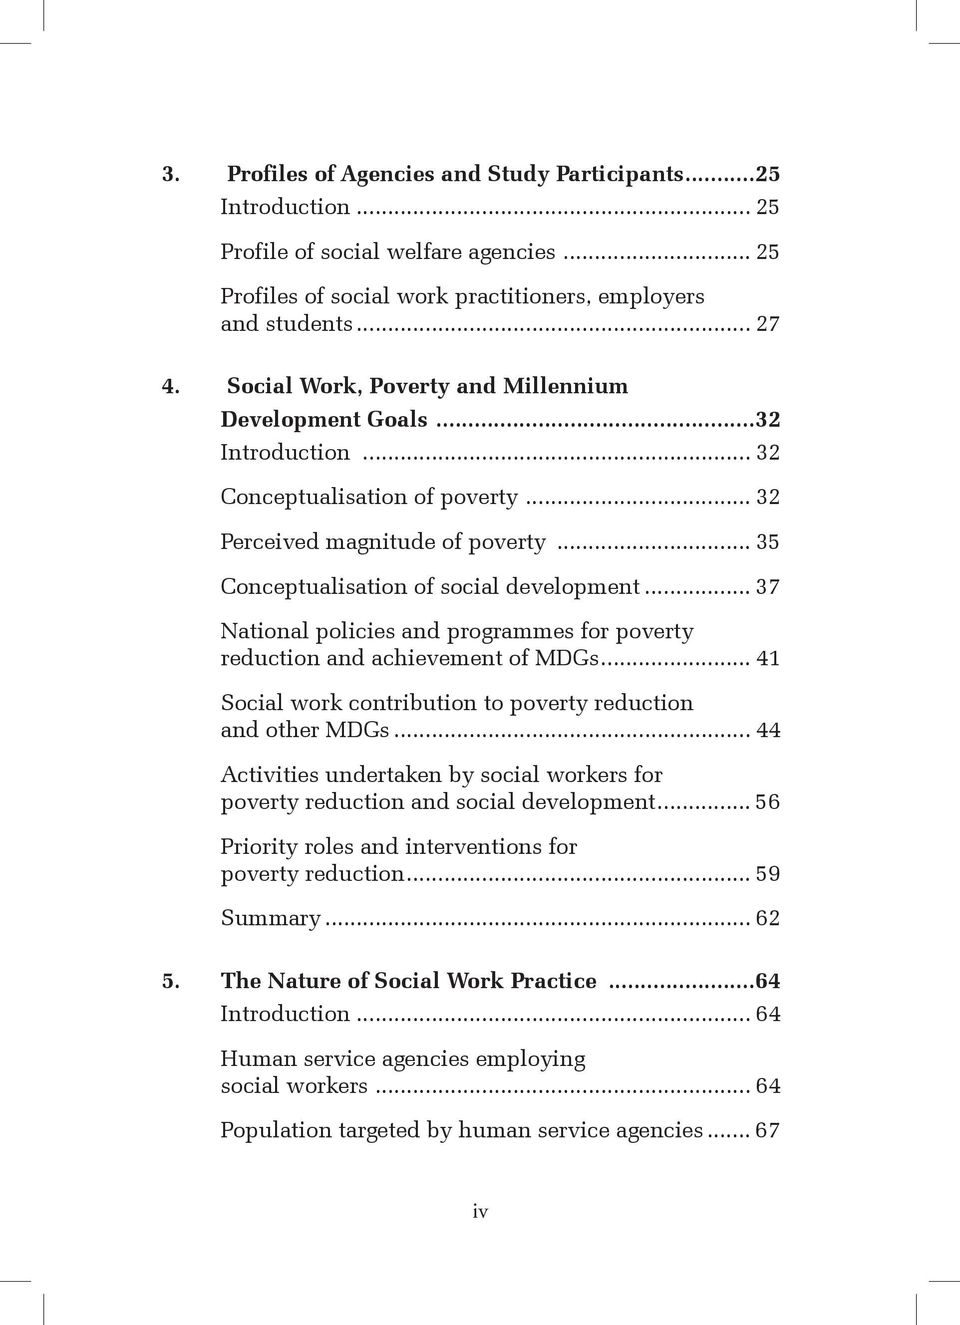 .. 37 National policies and programmes for poverty reduction and achievement of MDGs... 41 Social work contribution to poverty reduction and other MDGs.